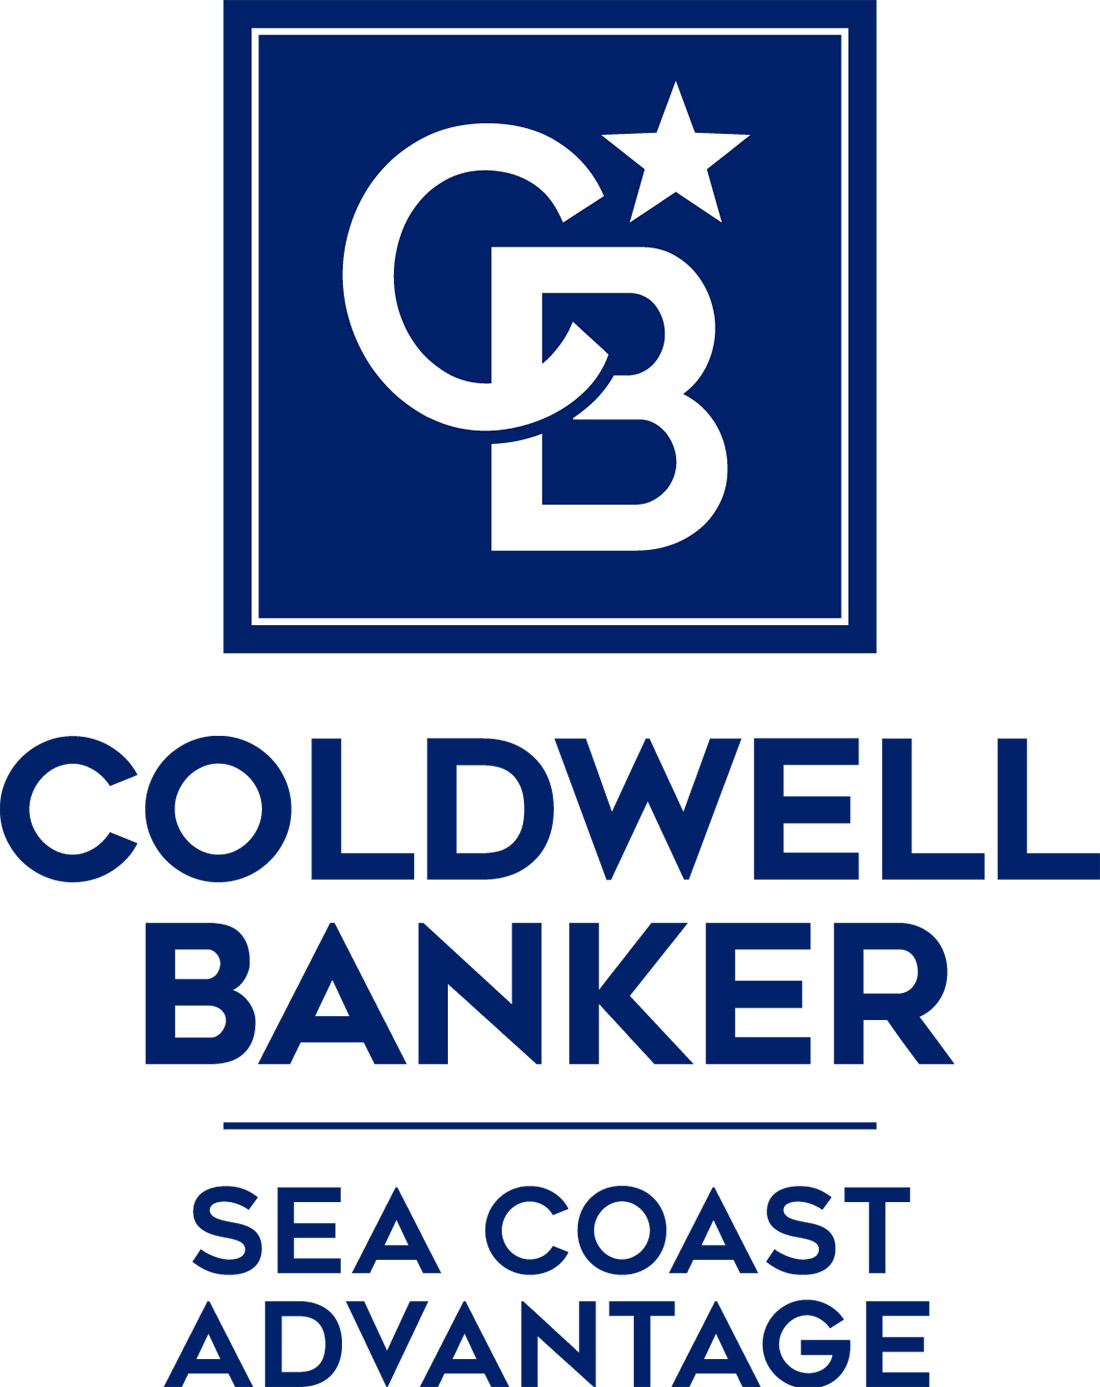 Suzanne Frederick - Coldwell Banker Sea Coast Advantage Realty